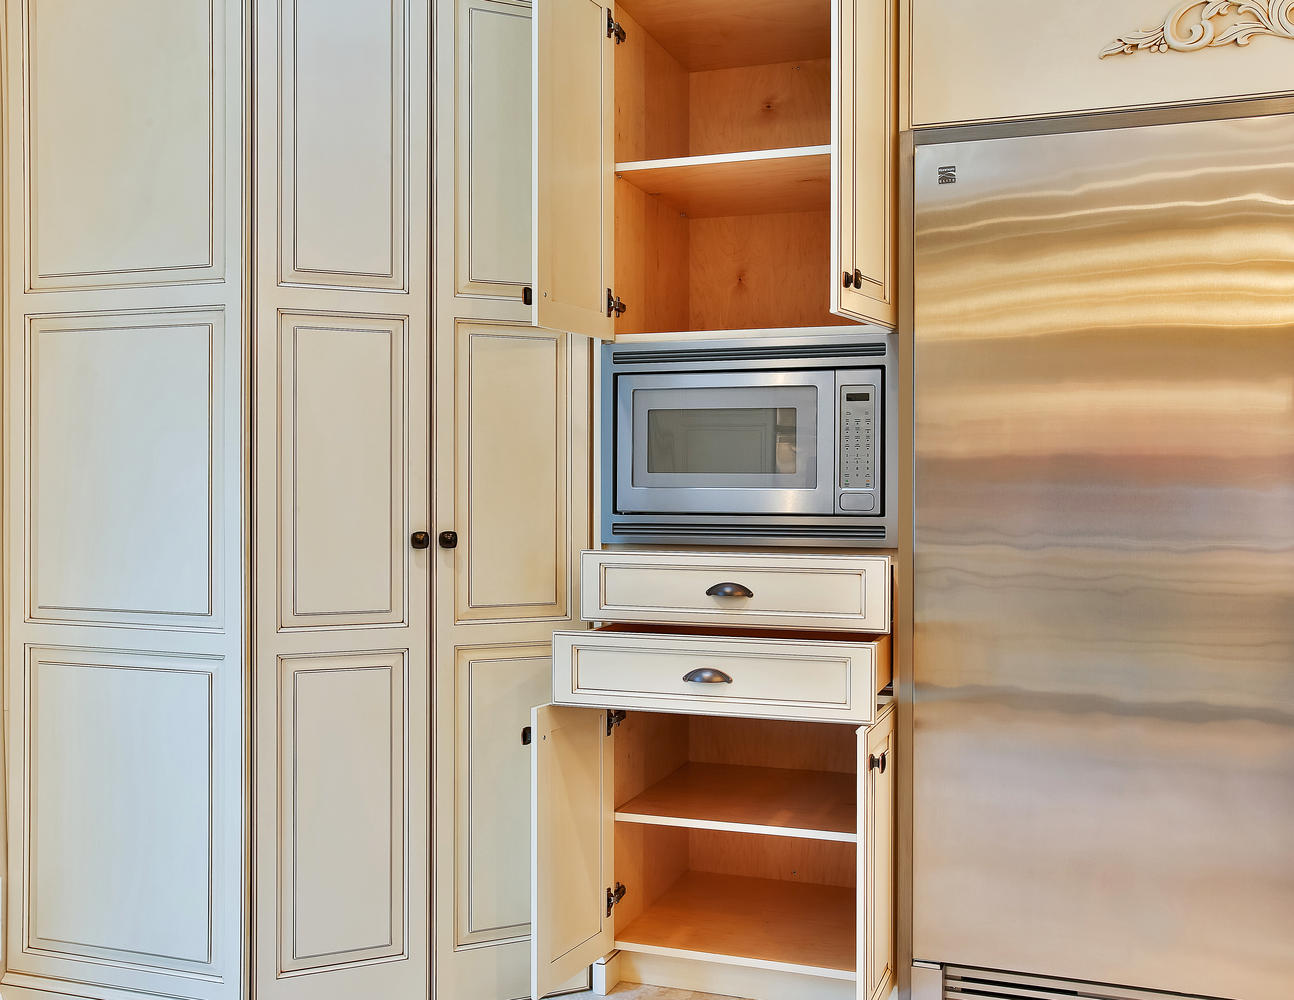 Traditional Kitchen Cabinets Toms River New Jersey By. Vintage Oster Kitchen Center. Kitchen Chef Glass Kettle. Diy Kitchen Remodel Steps. Kitchen Cart Kijiji. Kitchen Art Central Park Jakarta. Kitchen Set Crossword Clue. Red Kitchen Hair Products. B&q Kitchen Floor Tiles